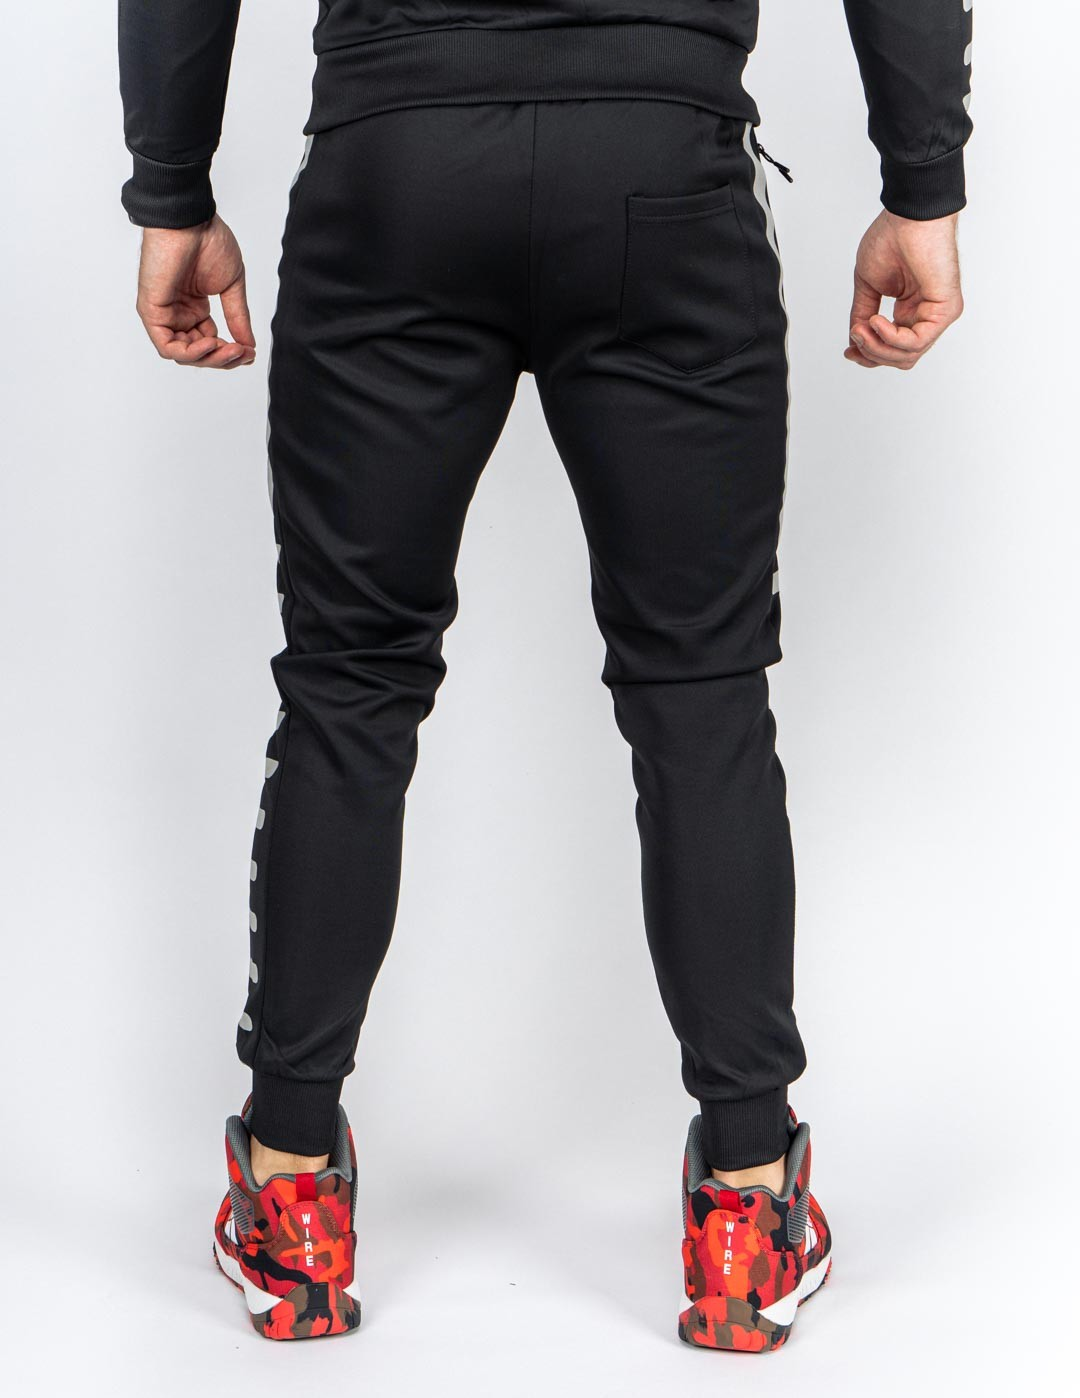 REFLEXERO SPORT IS YOUR GANG Tracksuit Black/Sliver